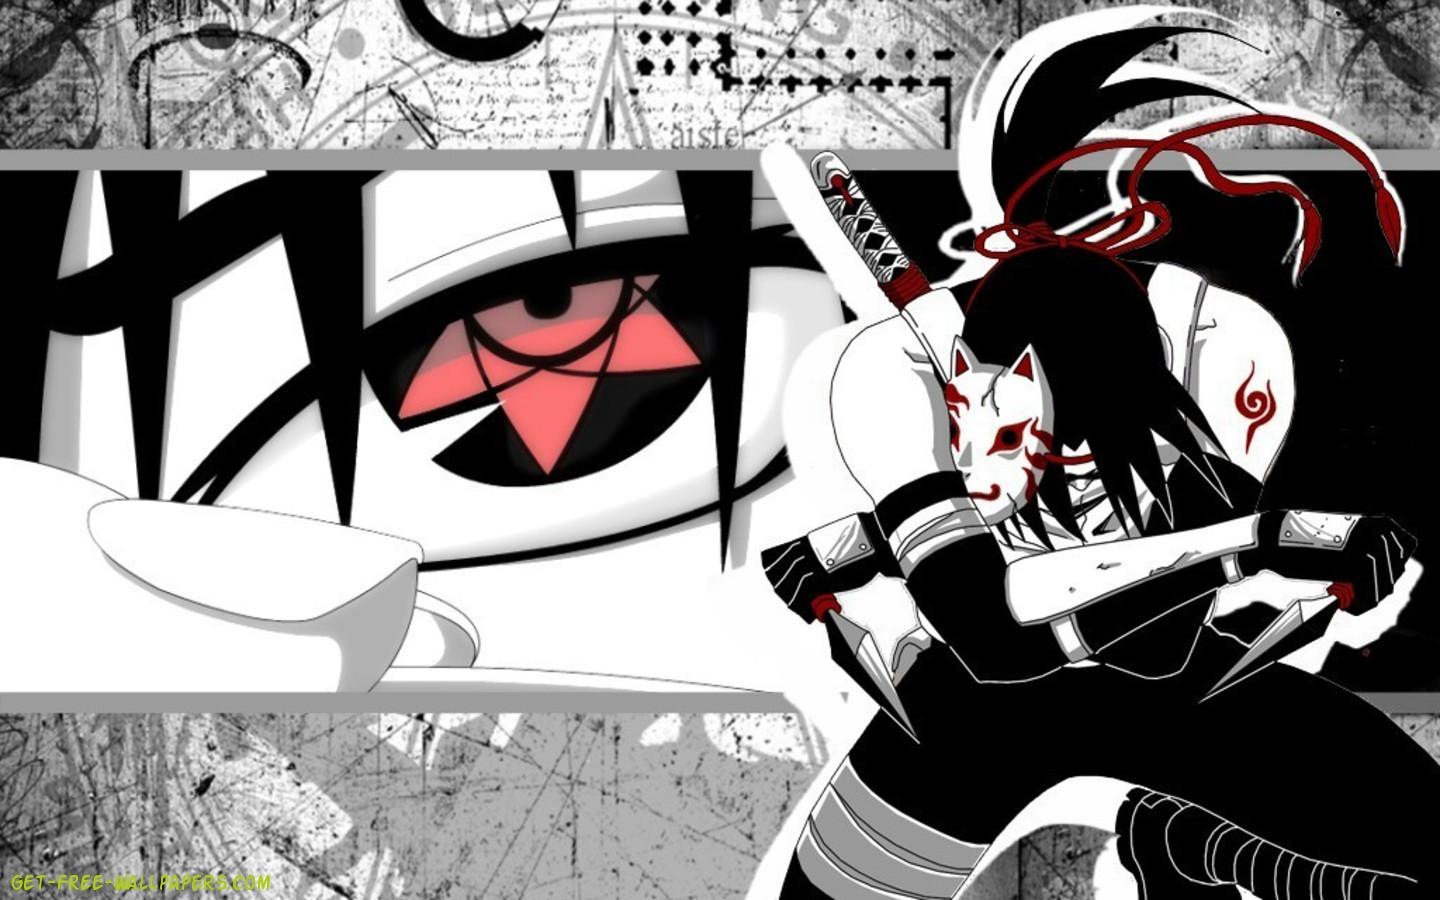 Hd Wallpapers Anbu Kakashi Wallpaper Download The 350 X 250 45 Kb 1440x900